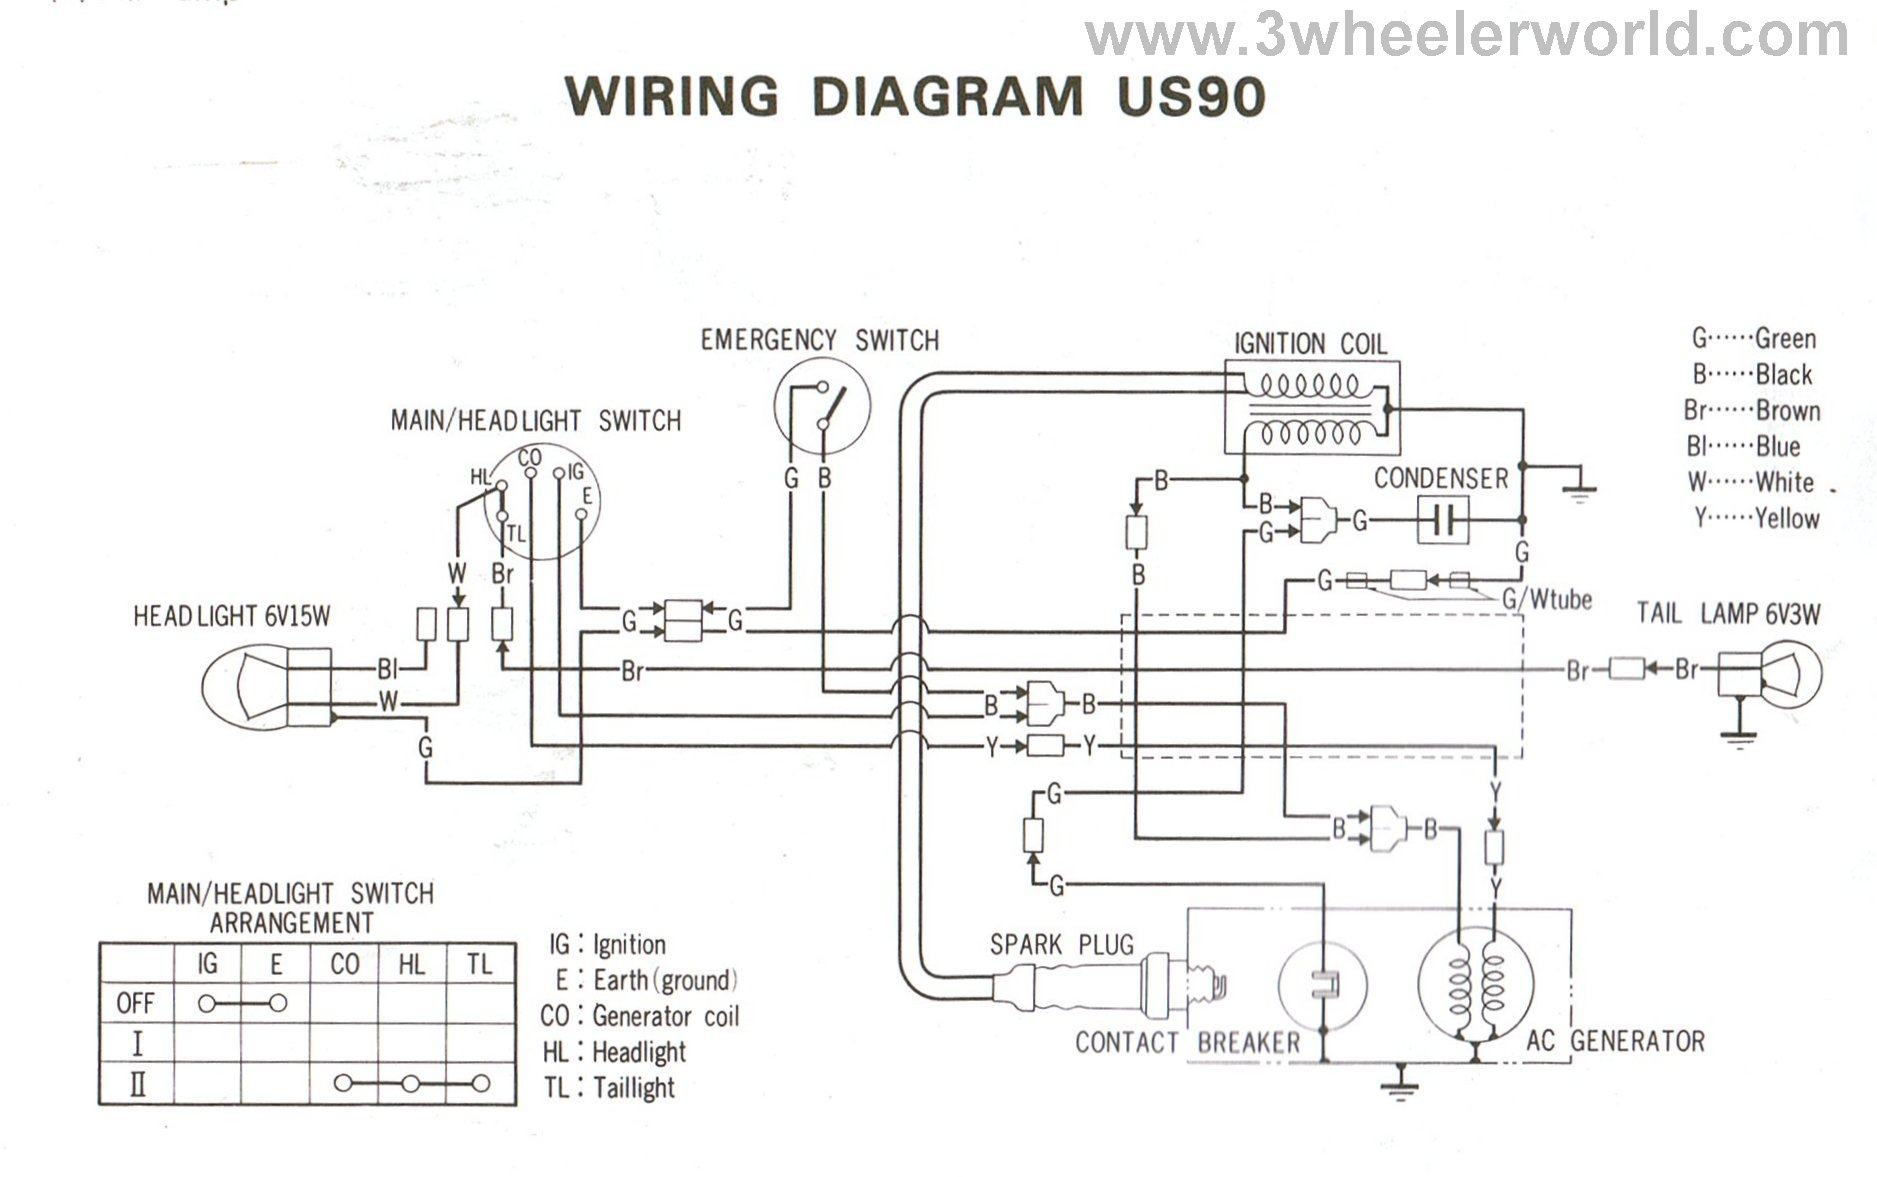 US90HM 3 wheeler world tech help honda wiring diagrams